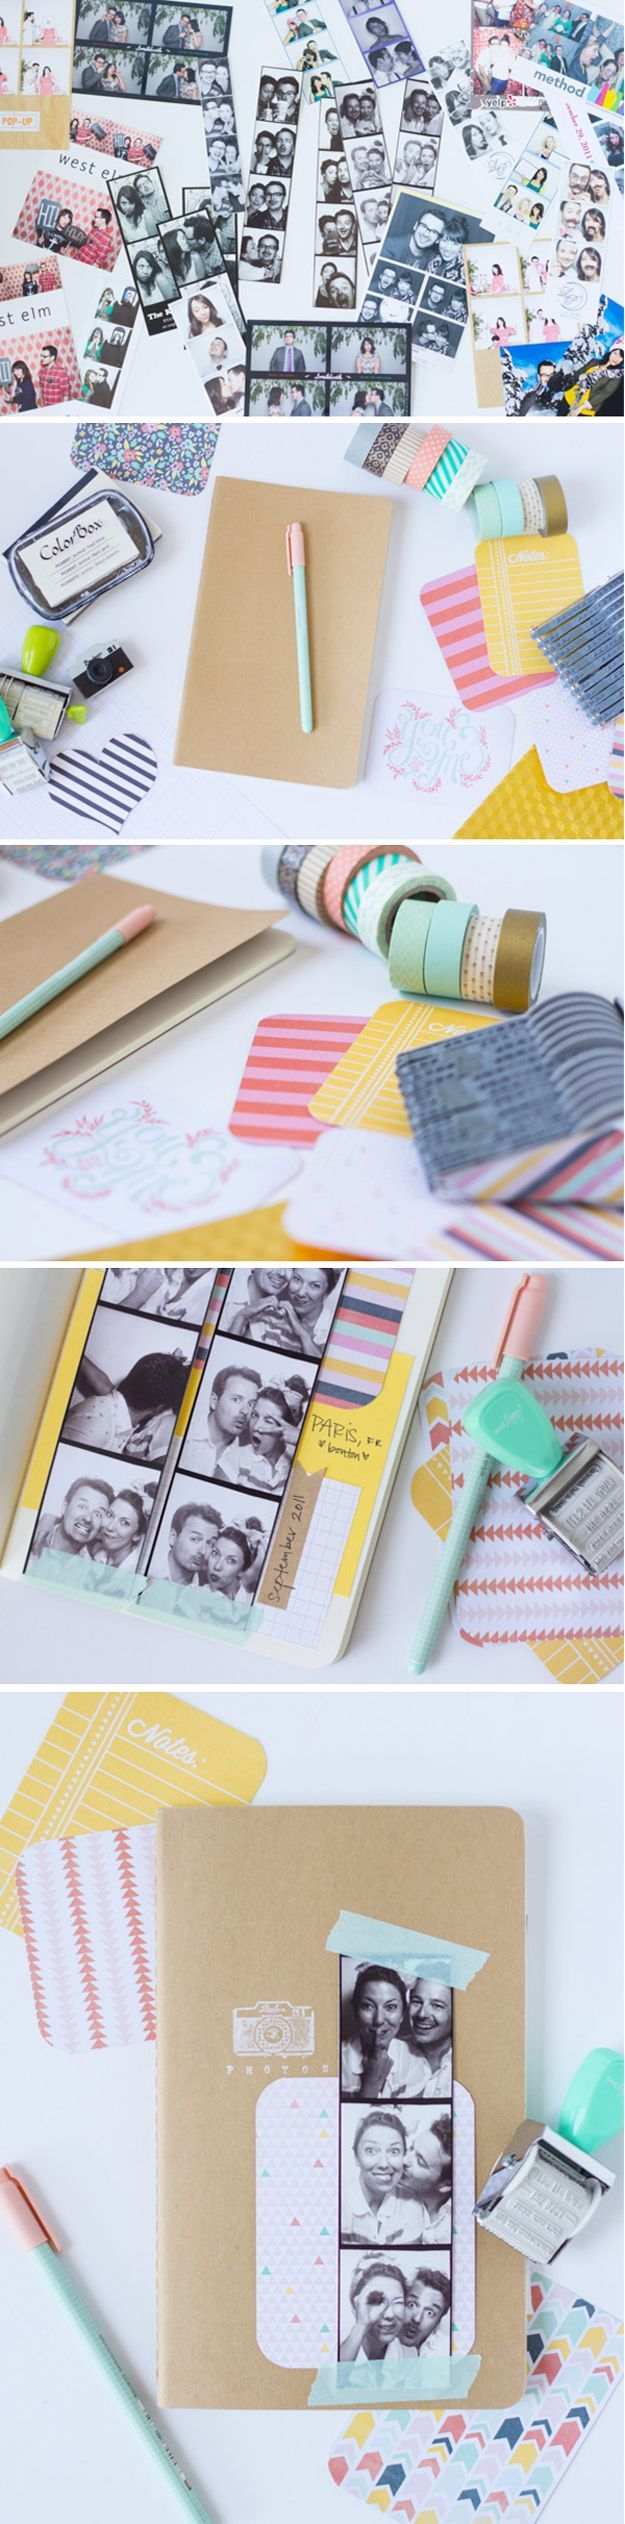 craft scrapbook ideas 17 best images about ticket scrapbook ideas on 1638